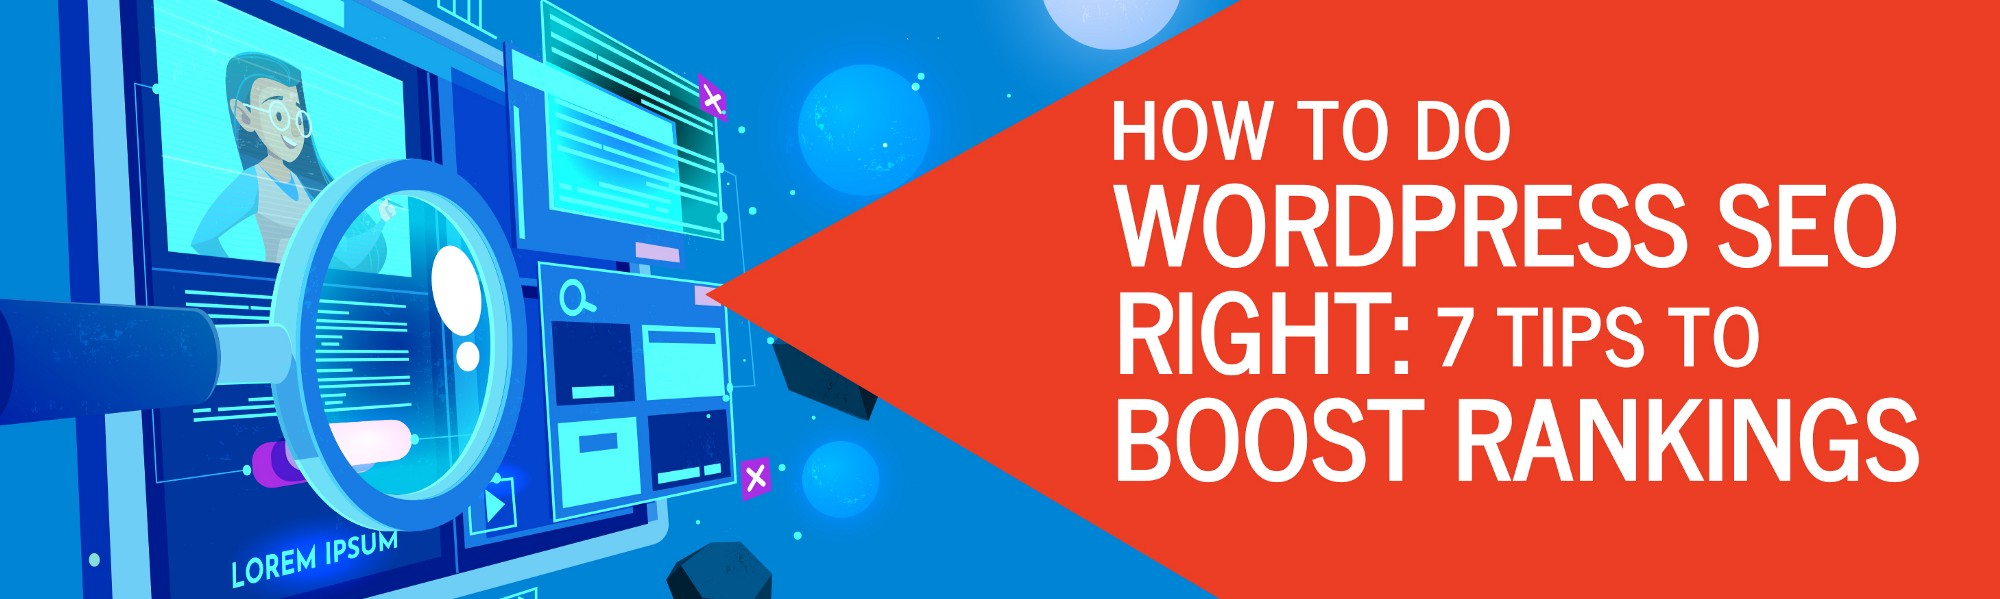 How to Do WordPress SEO Right: 7 Tips to Boost Rankings